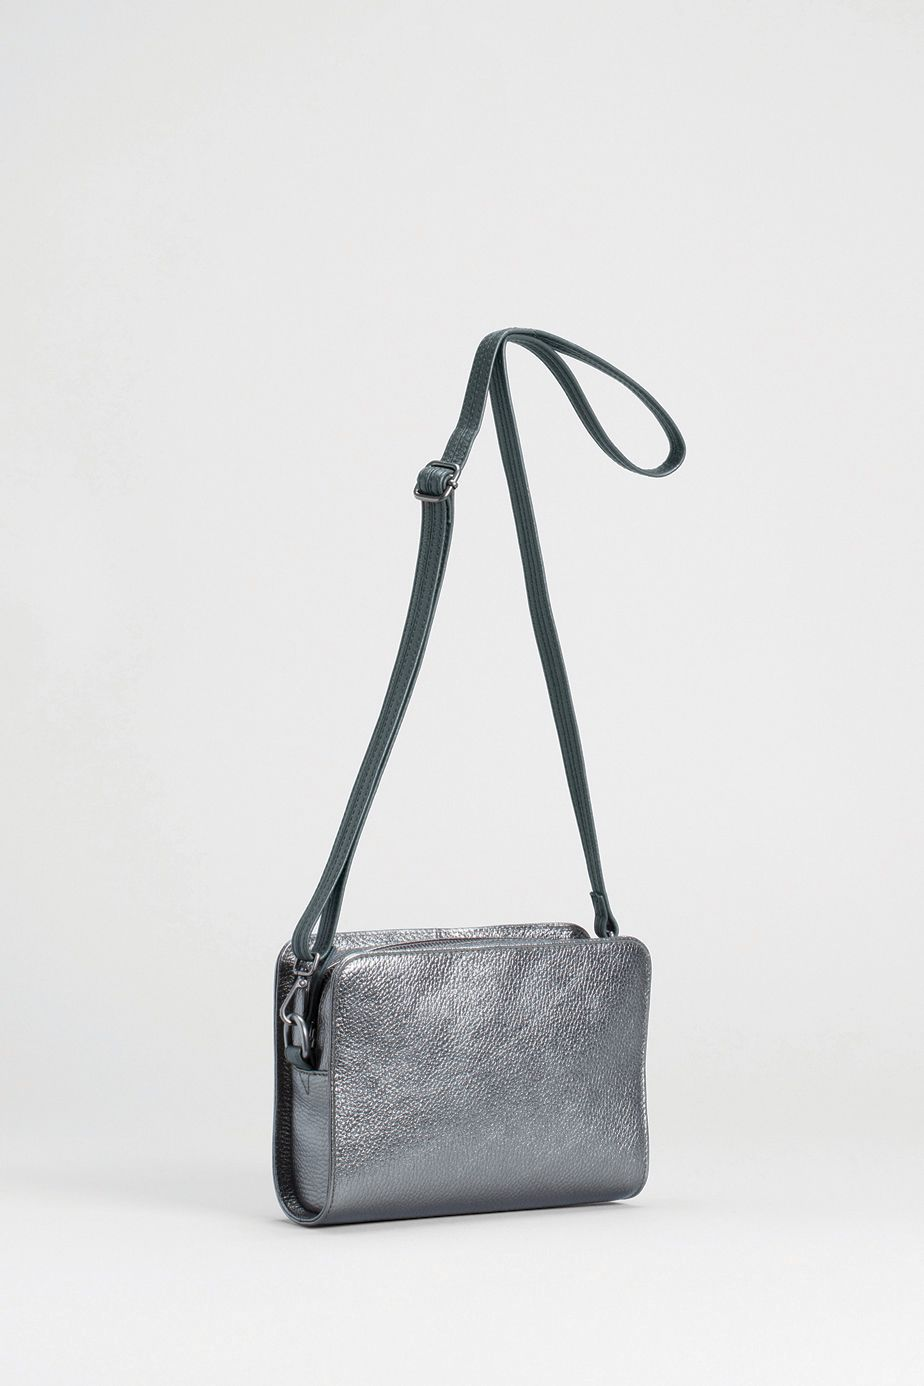 Malov Small Bag